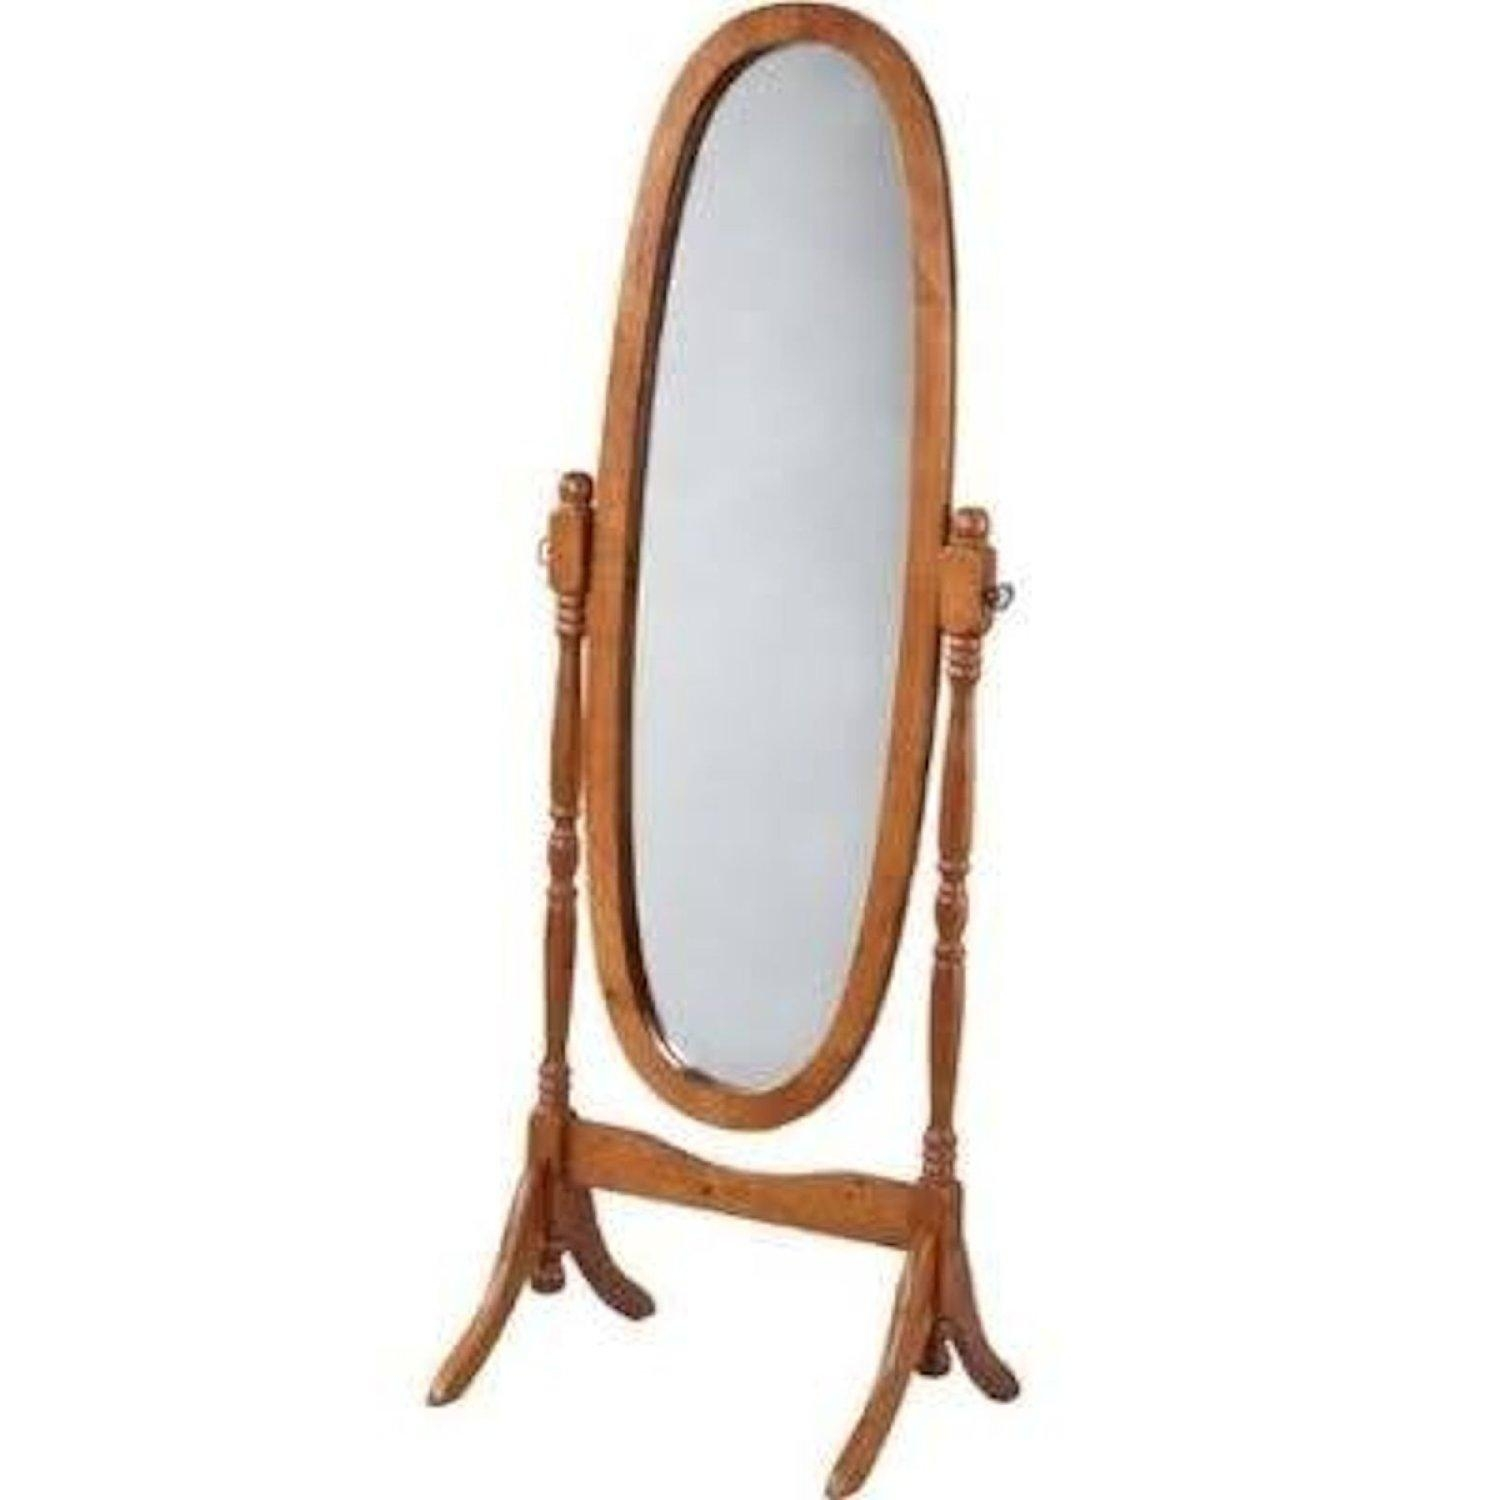 Homeware: Large Stand Up Mirrors | Standing Floor Mirrors | Floor Inside Free Standing Oak Mirror (Image 19 of 20)